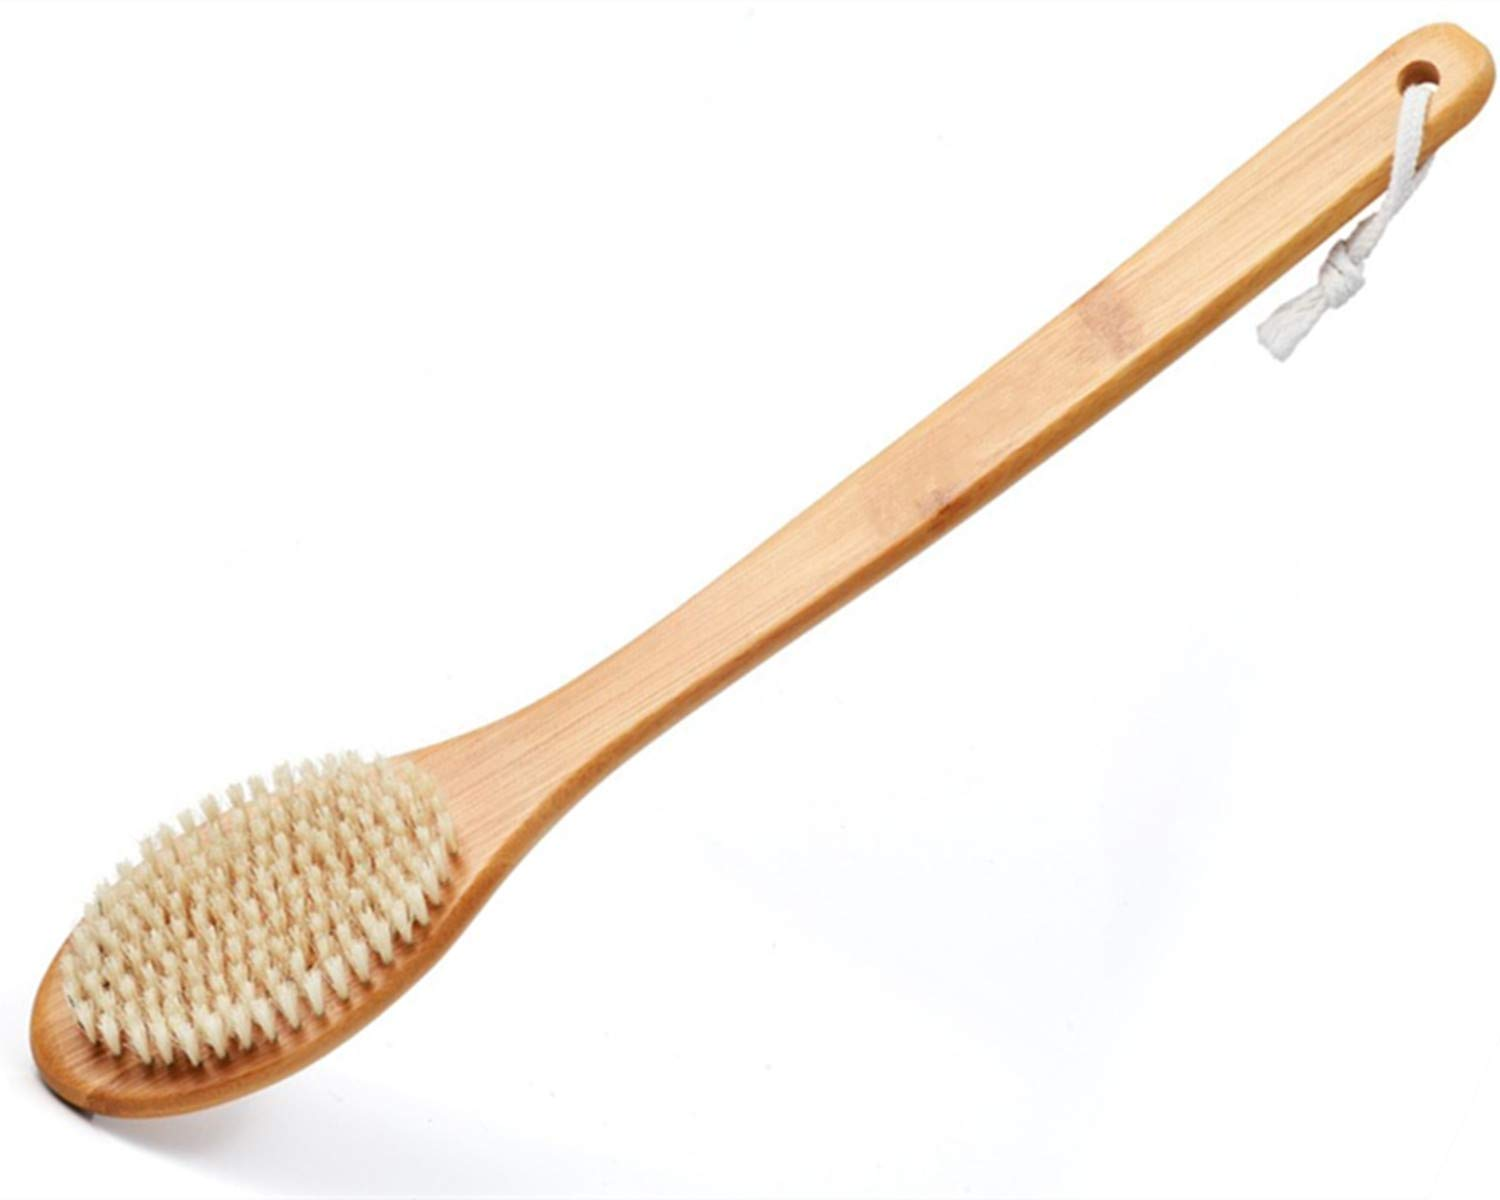 Body brush Attention brand shower online shopping has can bristles soft exfoliate